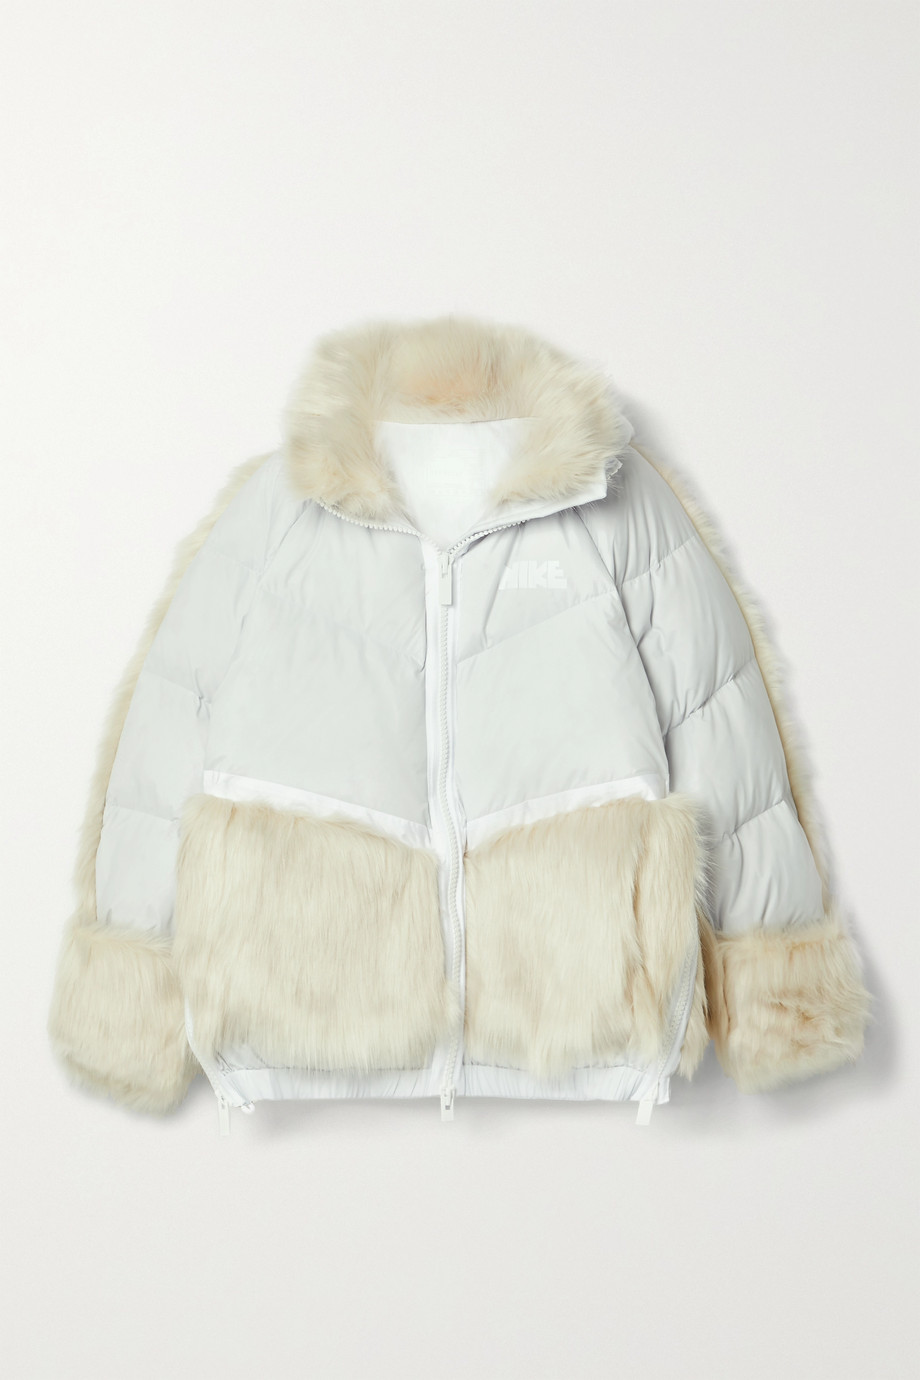 + Sacai NRG oversized hooded faux fur and quilted shell down jacket by Net-a-porter, available on net-a-porter.com for $600 Kylie Jenner Outerwear SIMILAR PRODUCT